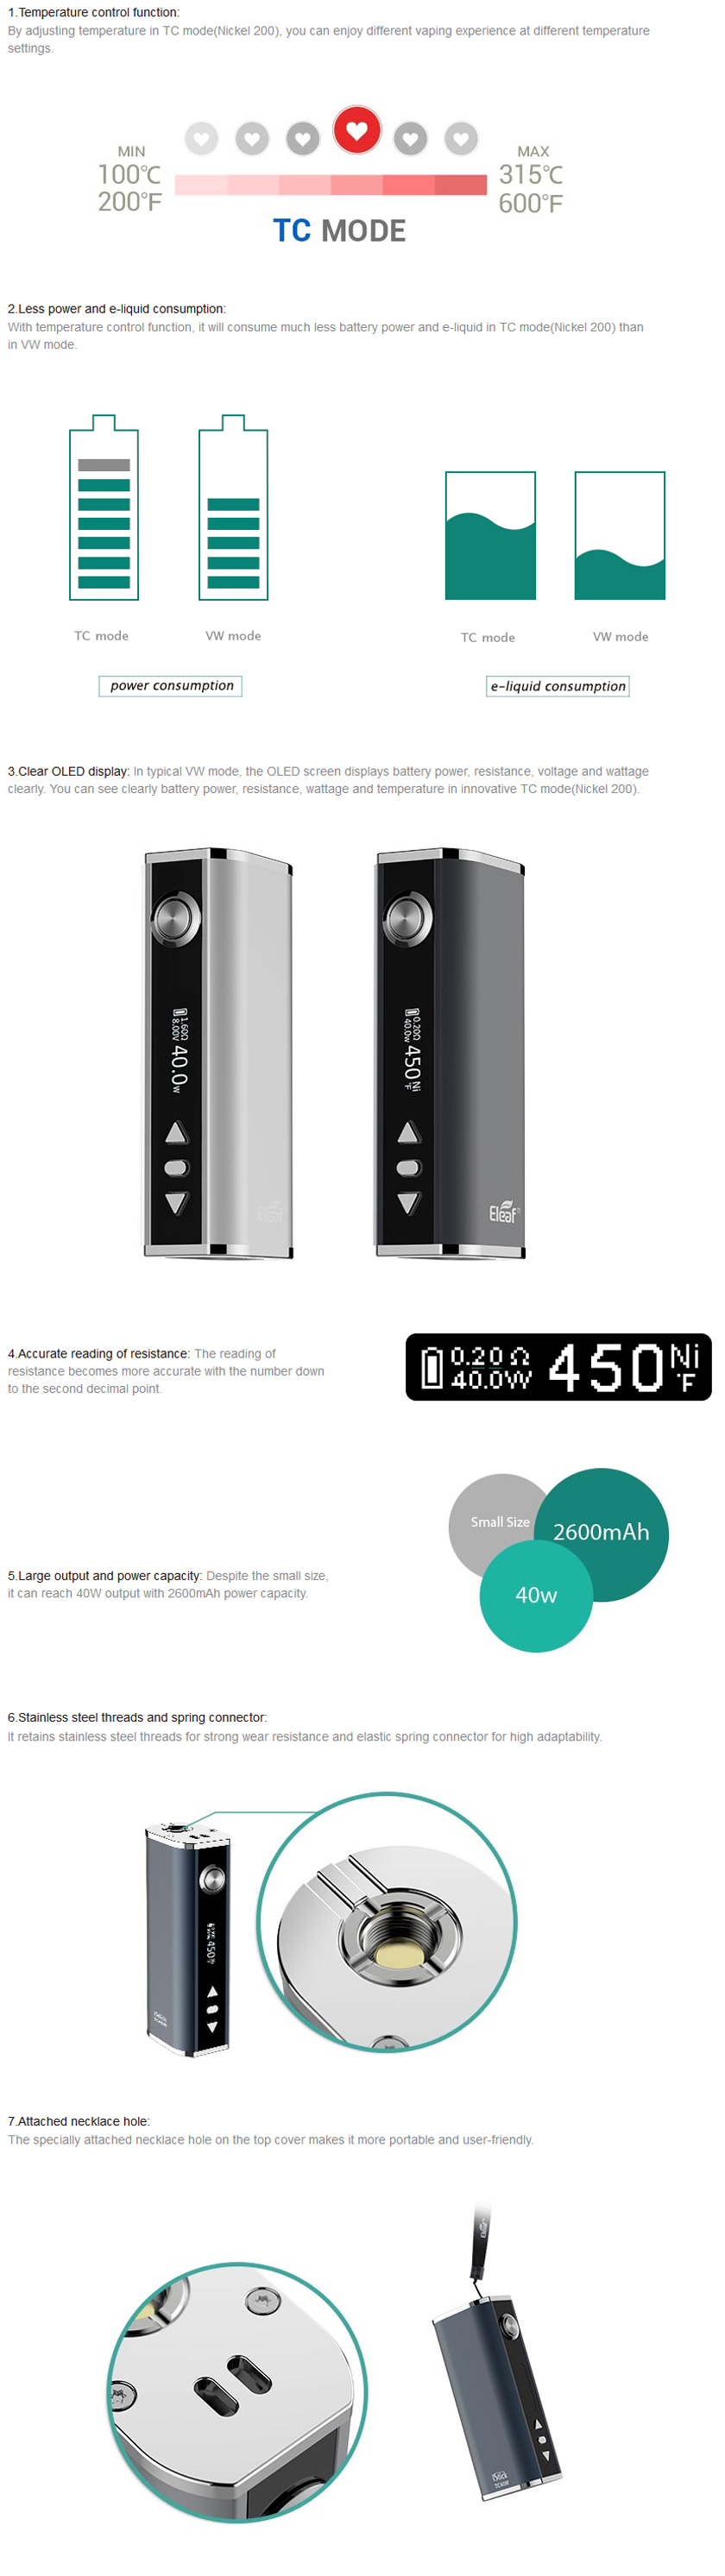 iStick TC40W Features